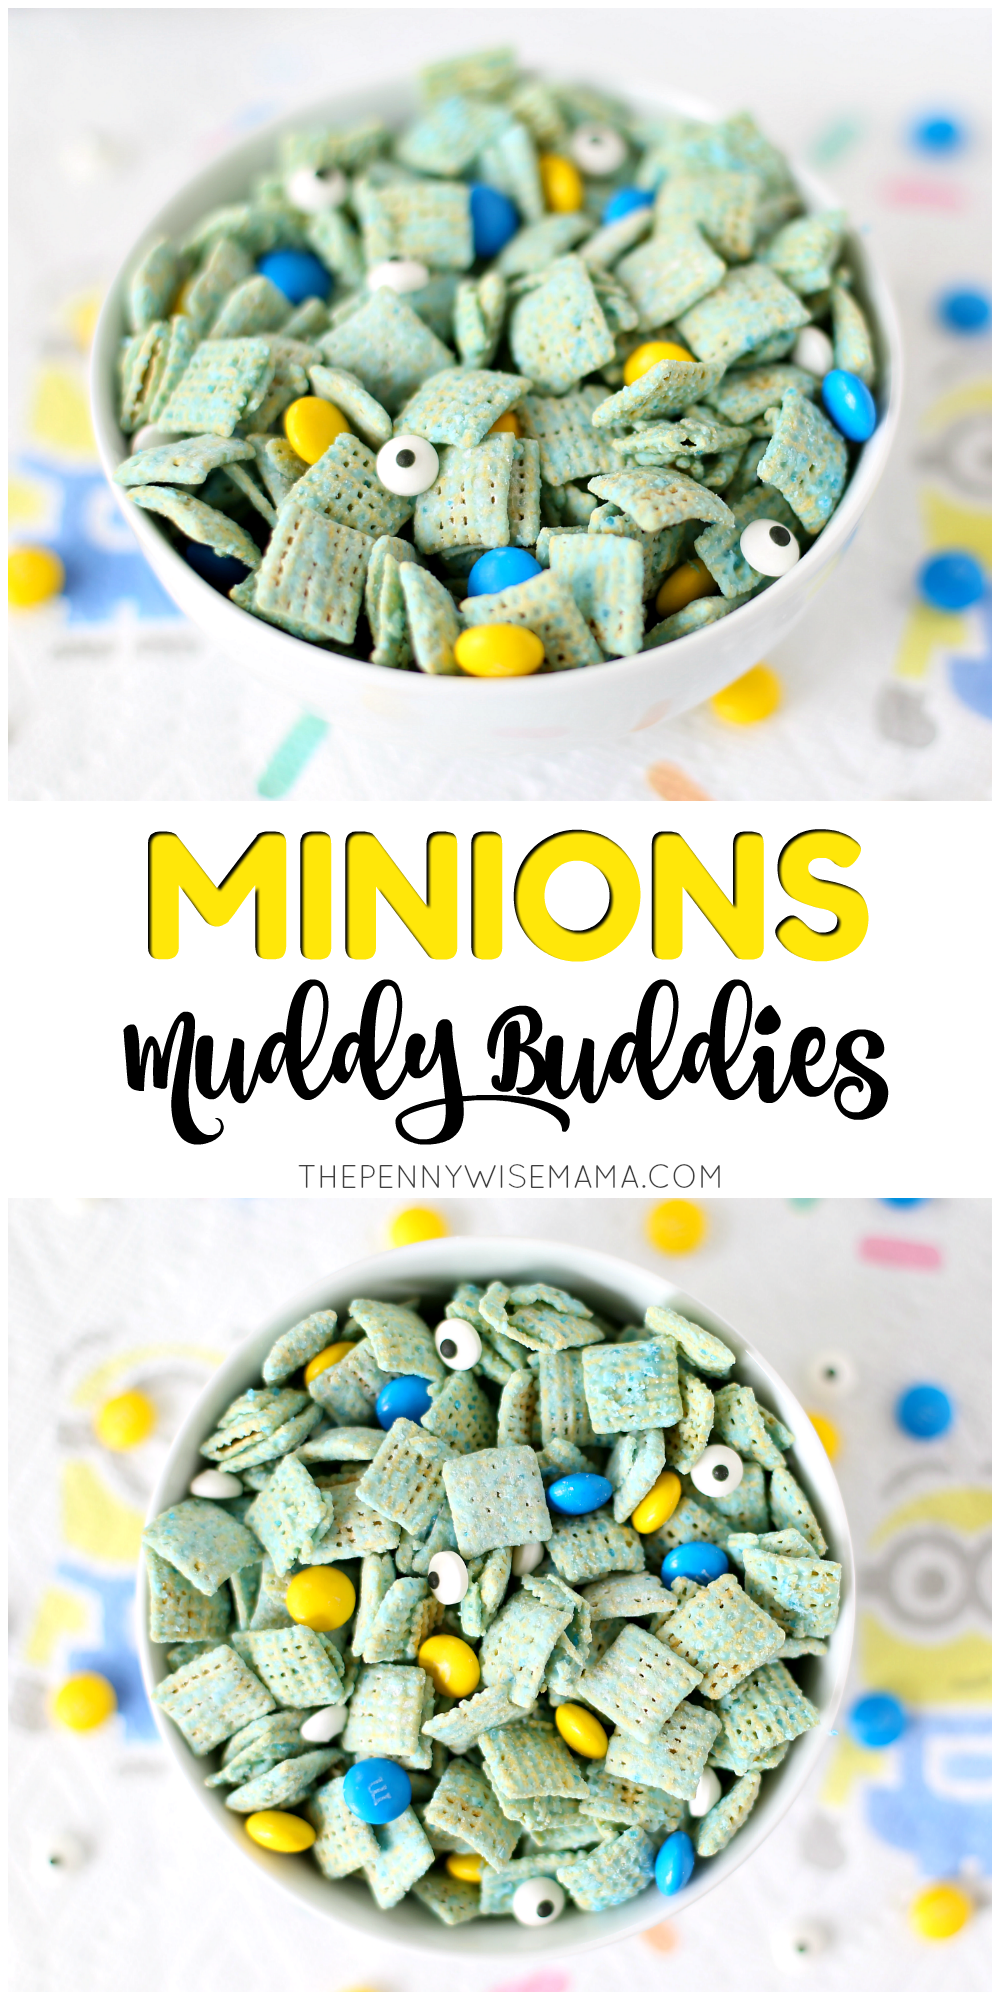 Minions Muddy Buddies - simple recipe that is great for parties!